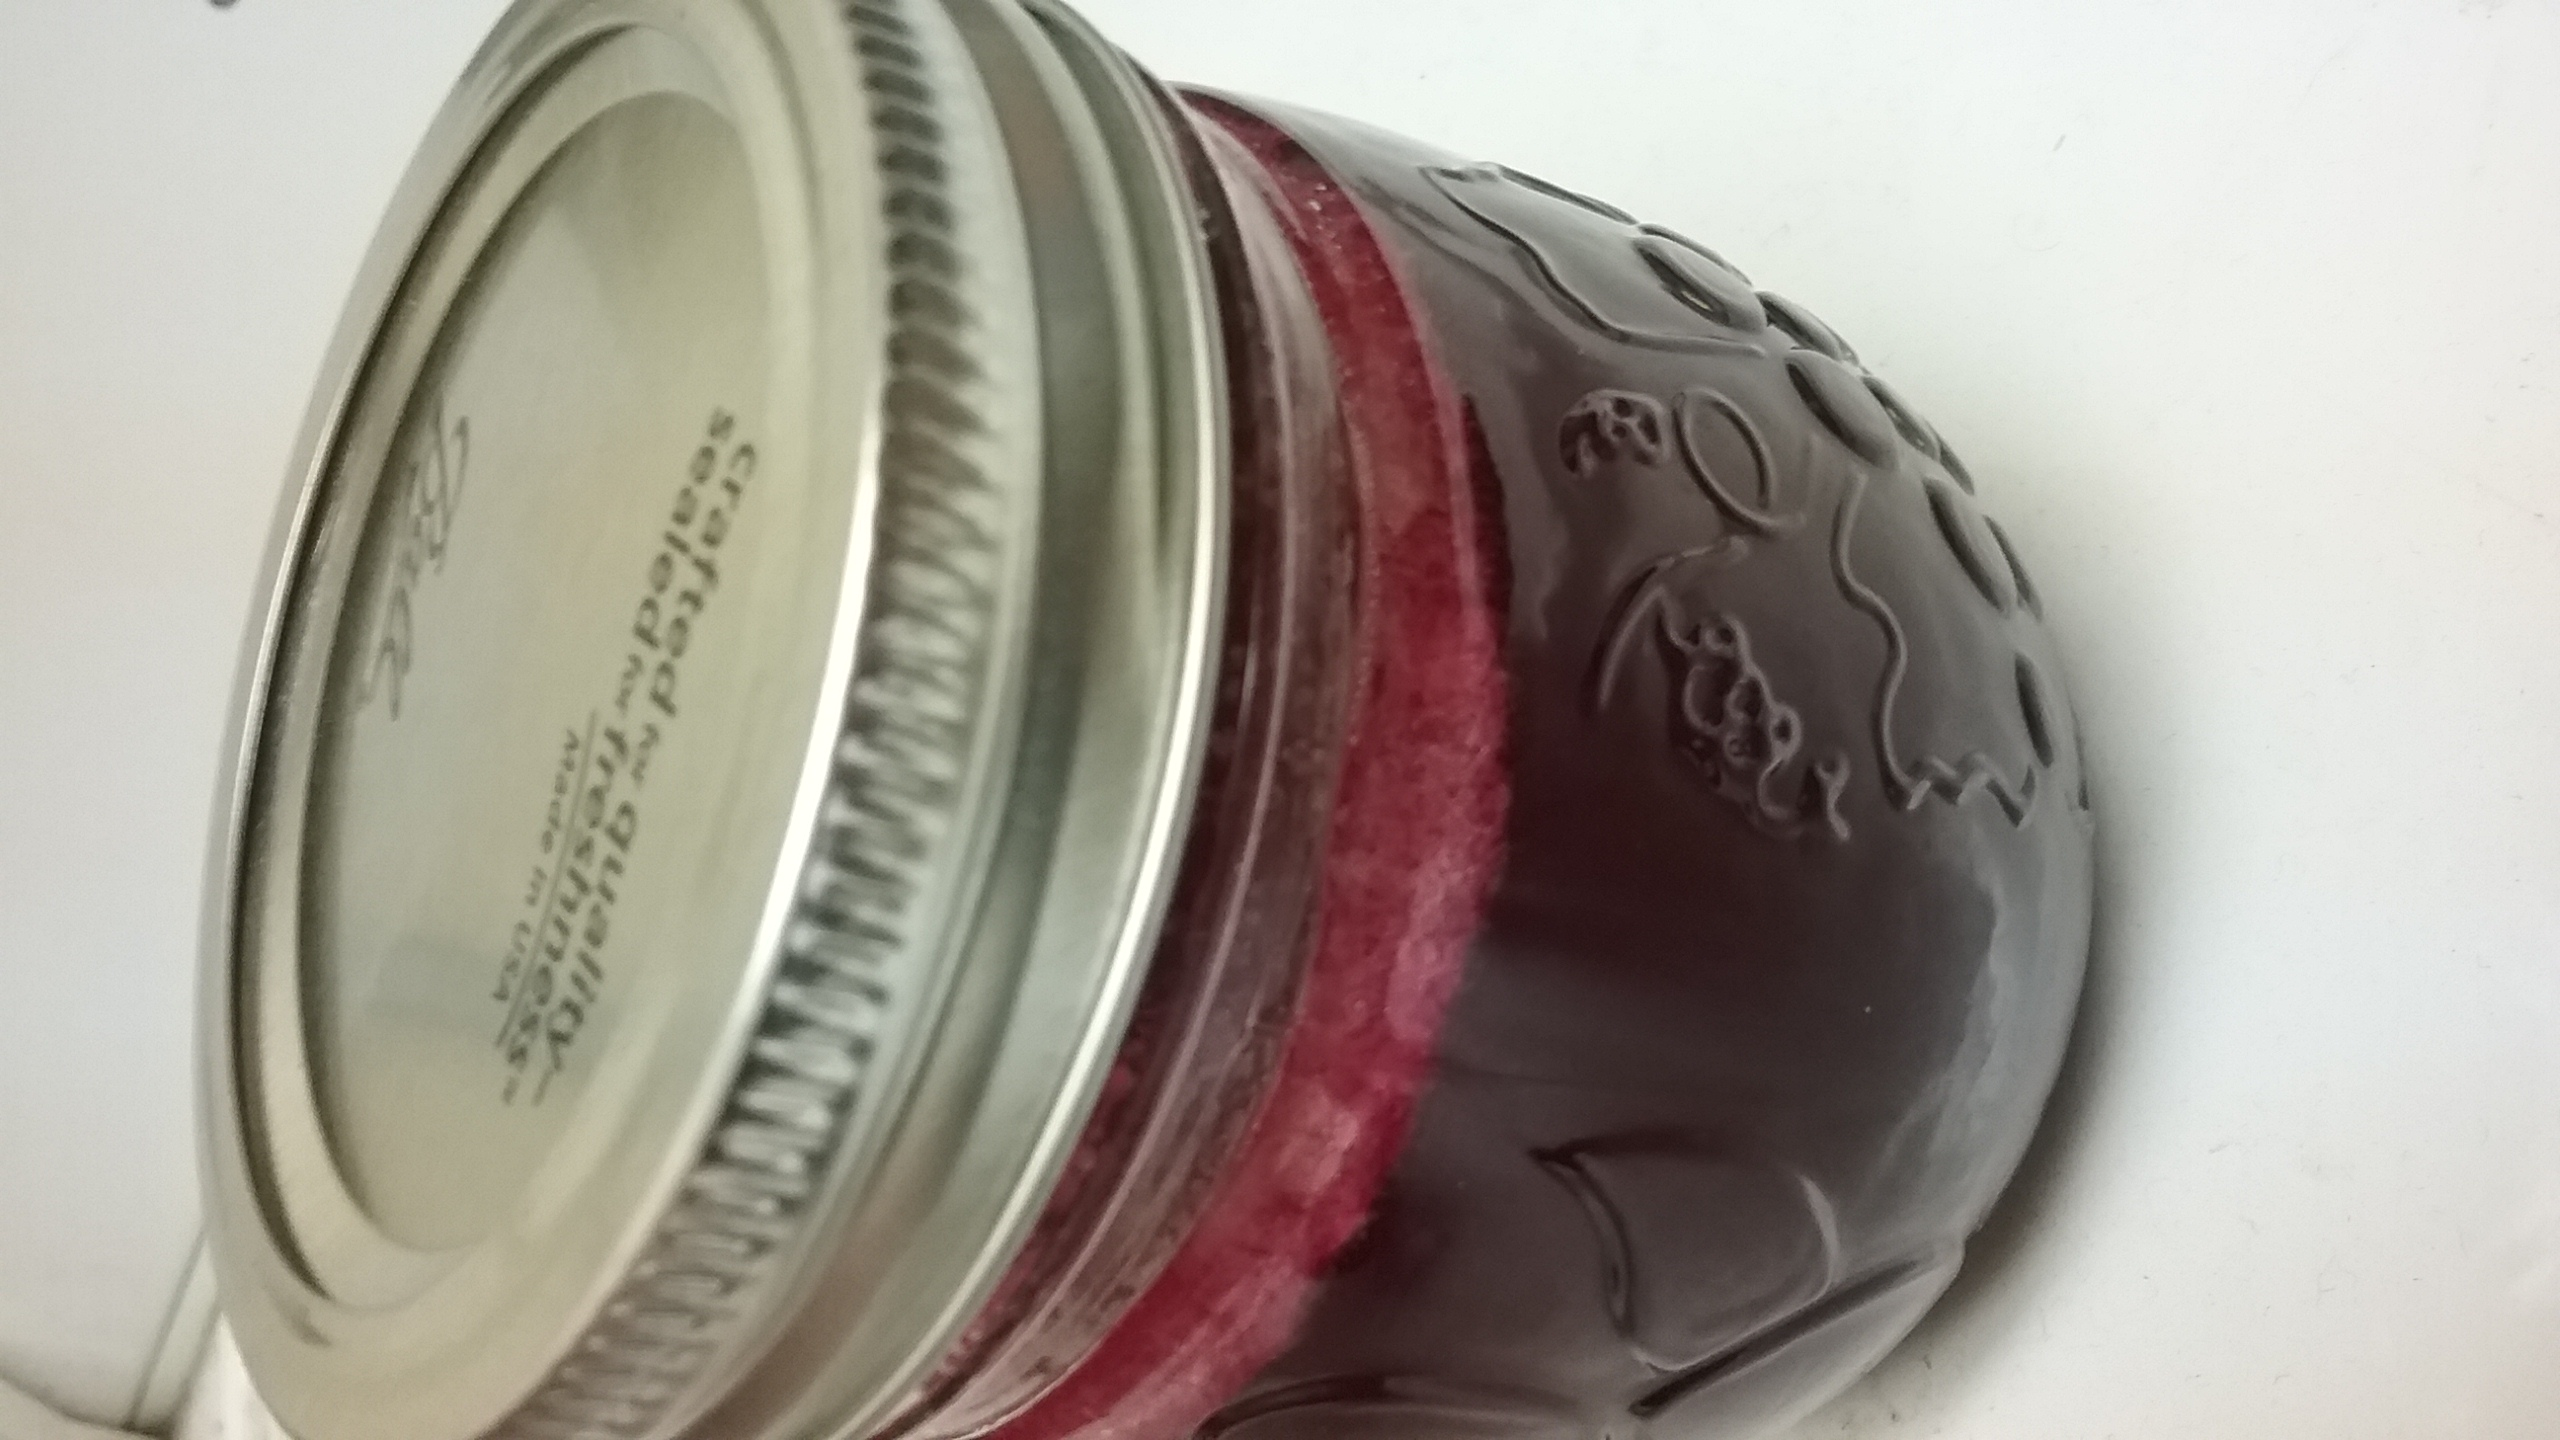 Prickly Pear Jelly